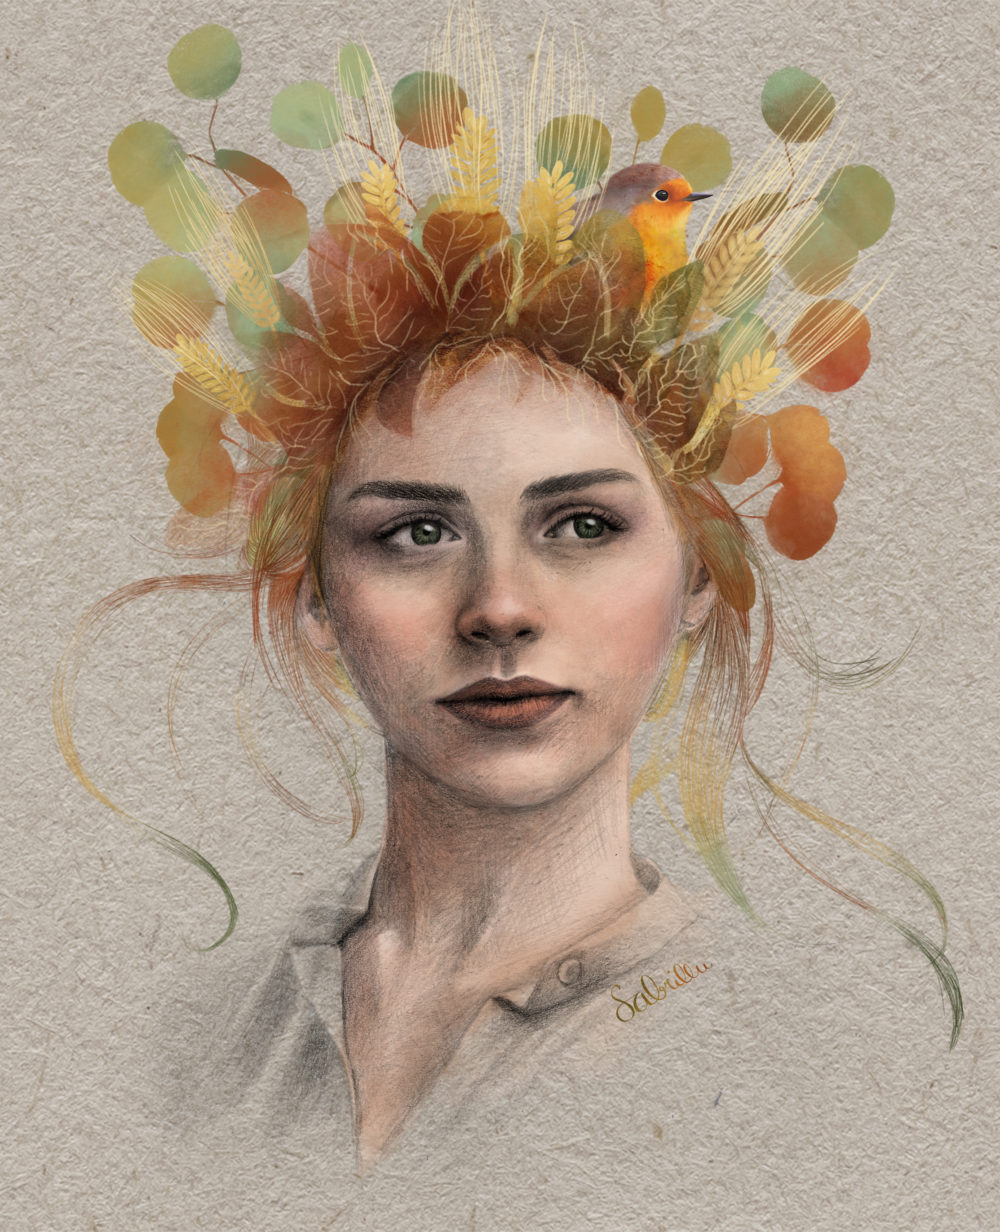 Digital - mixed media art portrait with bird and leaves